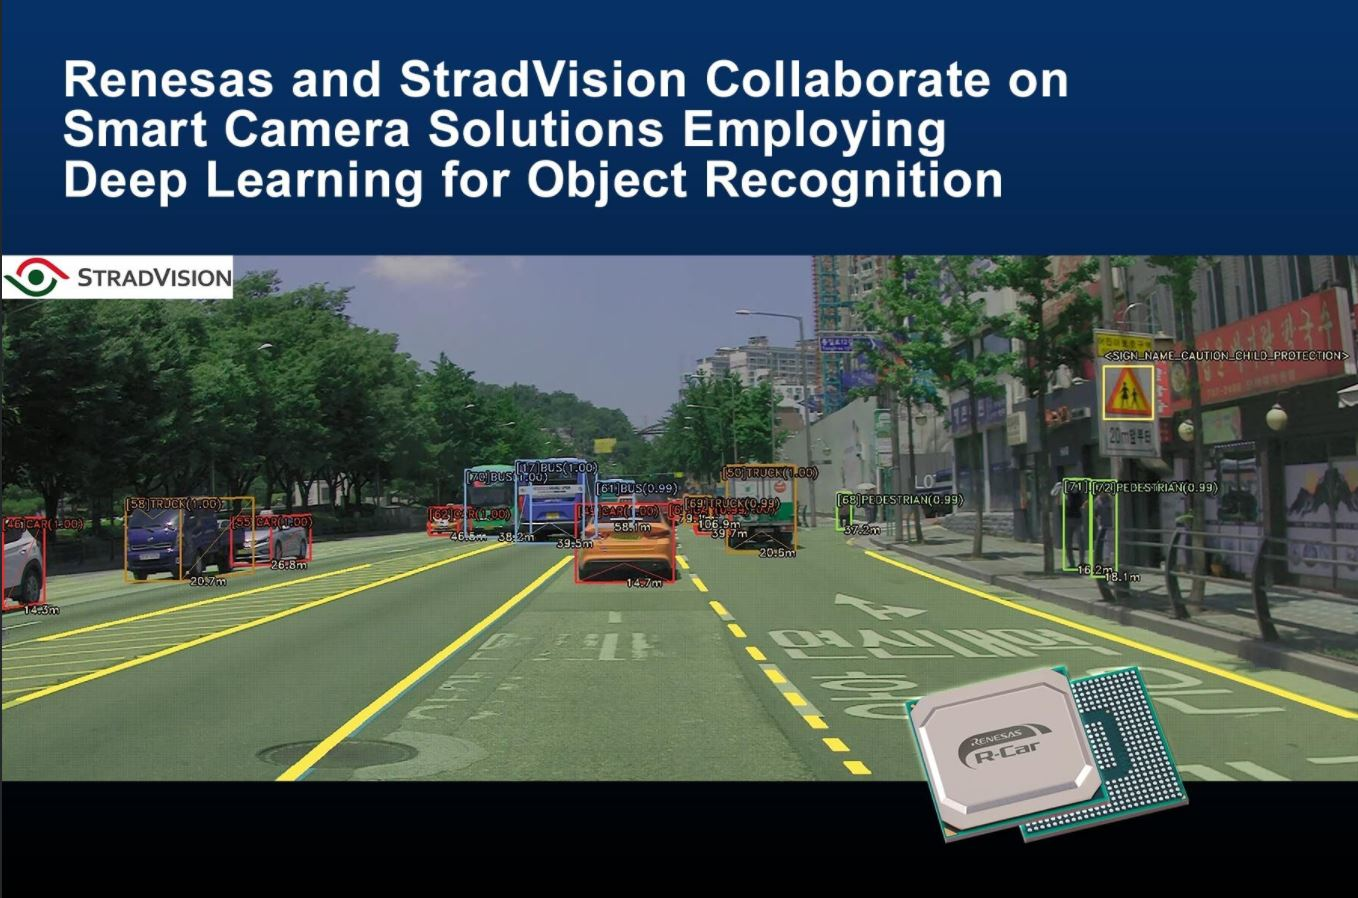 Renesas, StradVision Cooperate on Smart Camera Development